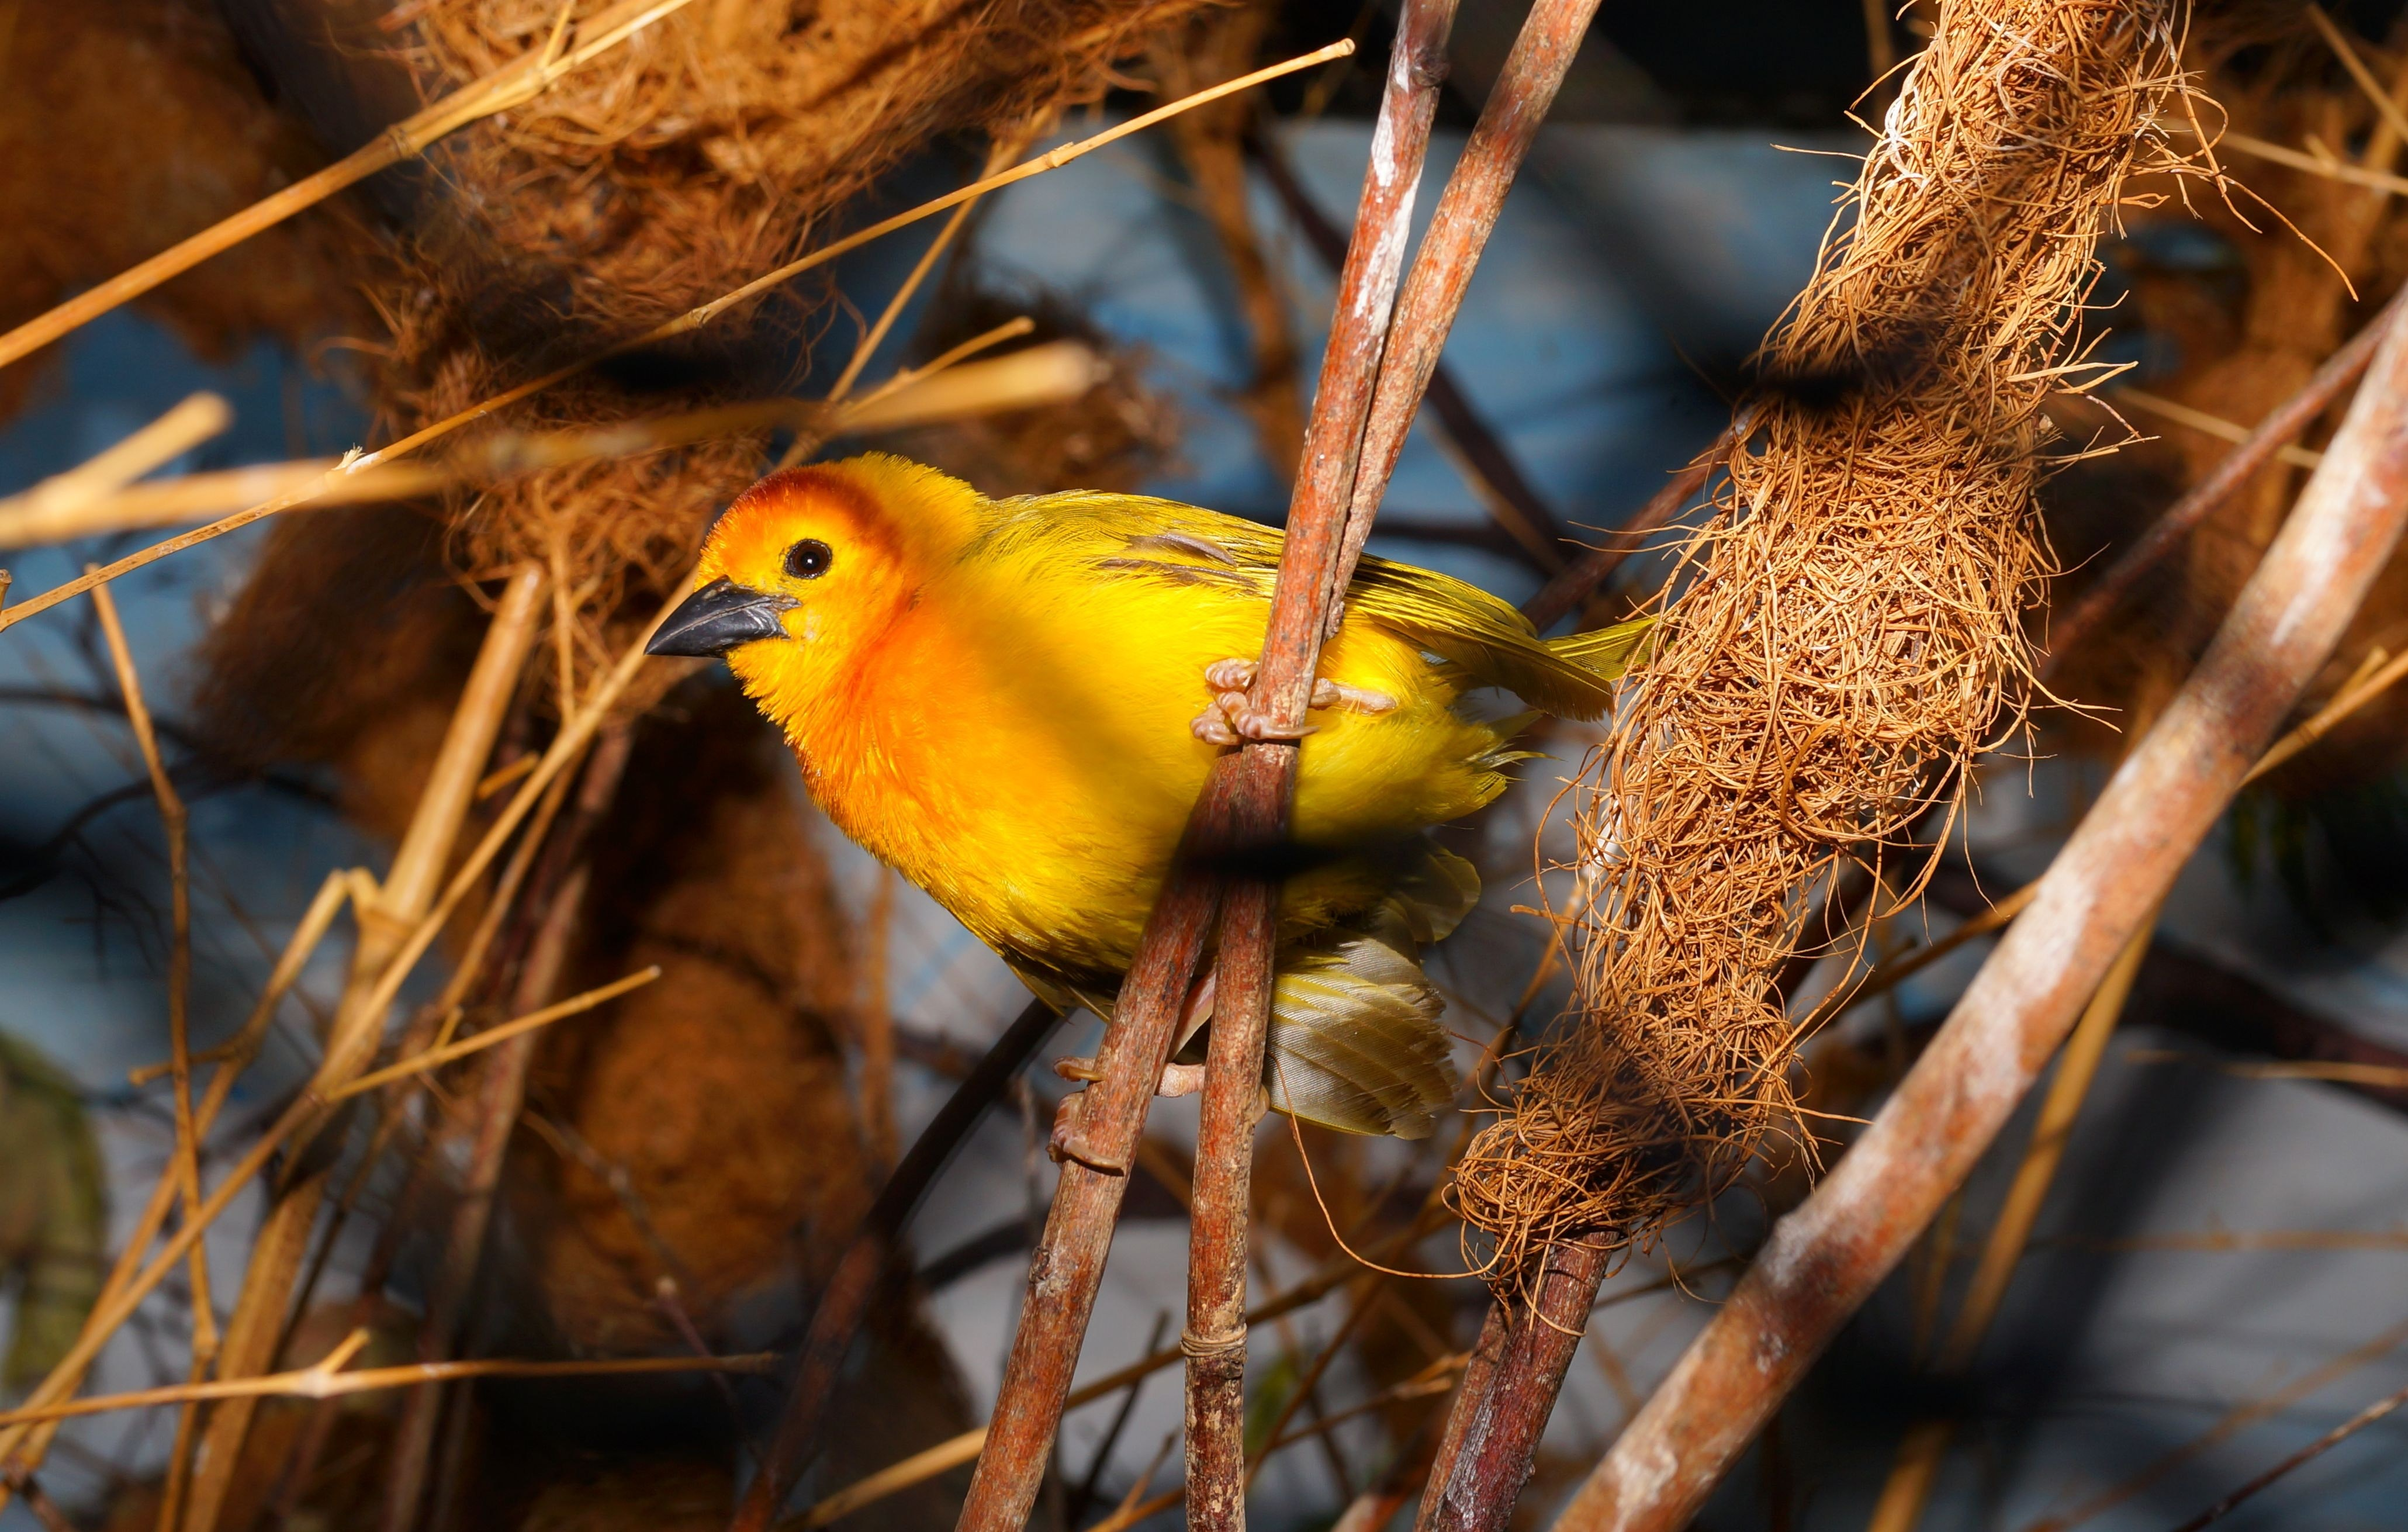 Closeup photography of yellow bird perched